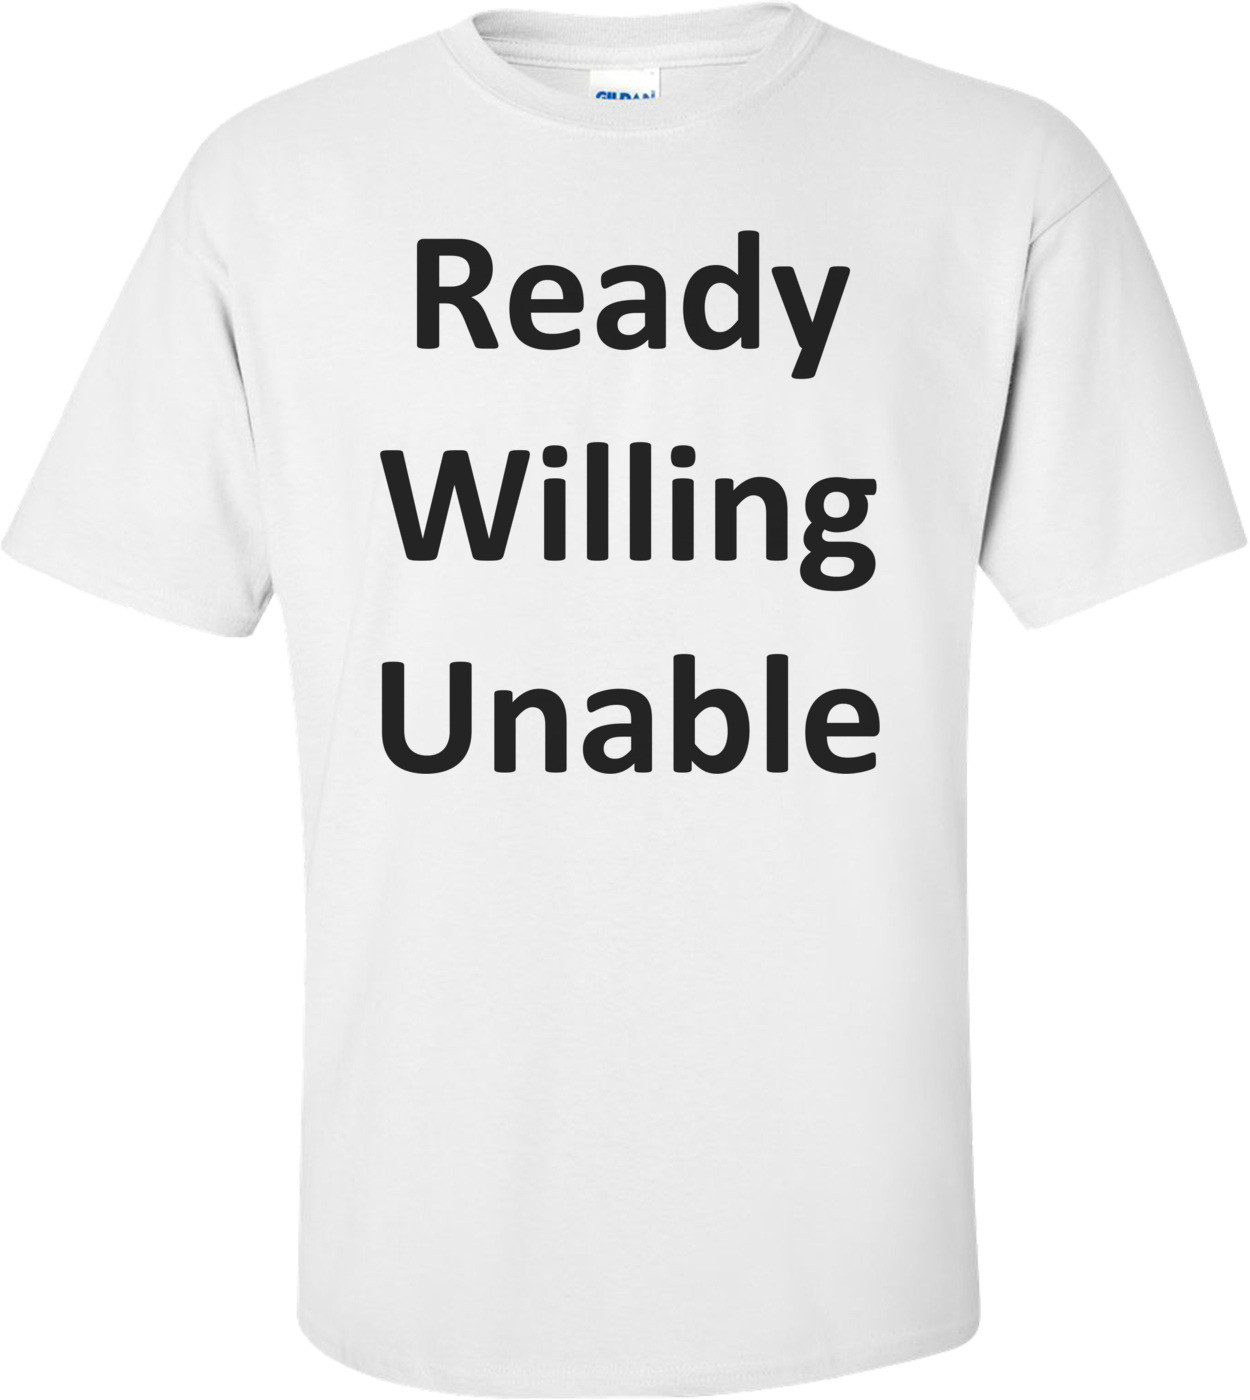 Ready Willing Unable Shirt